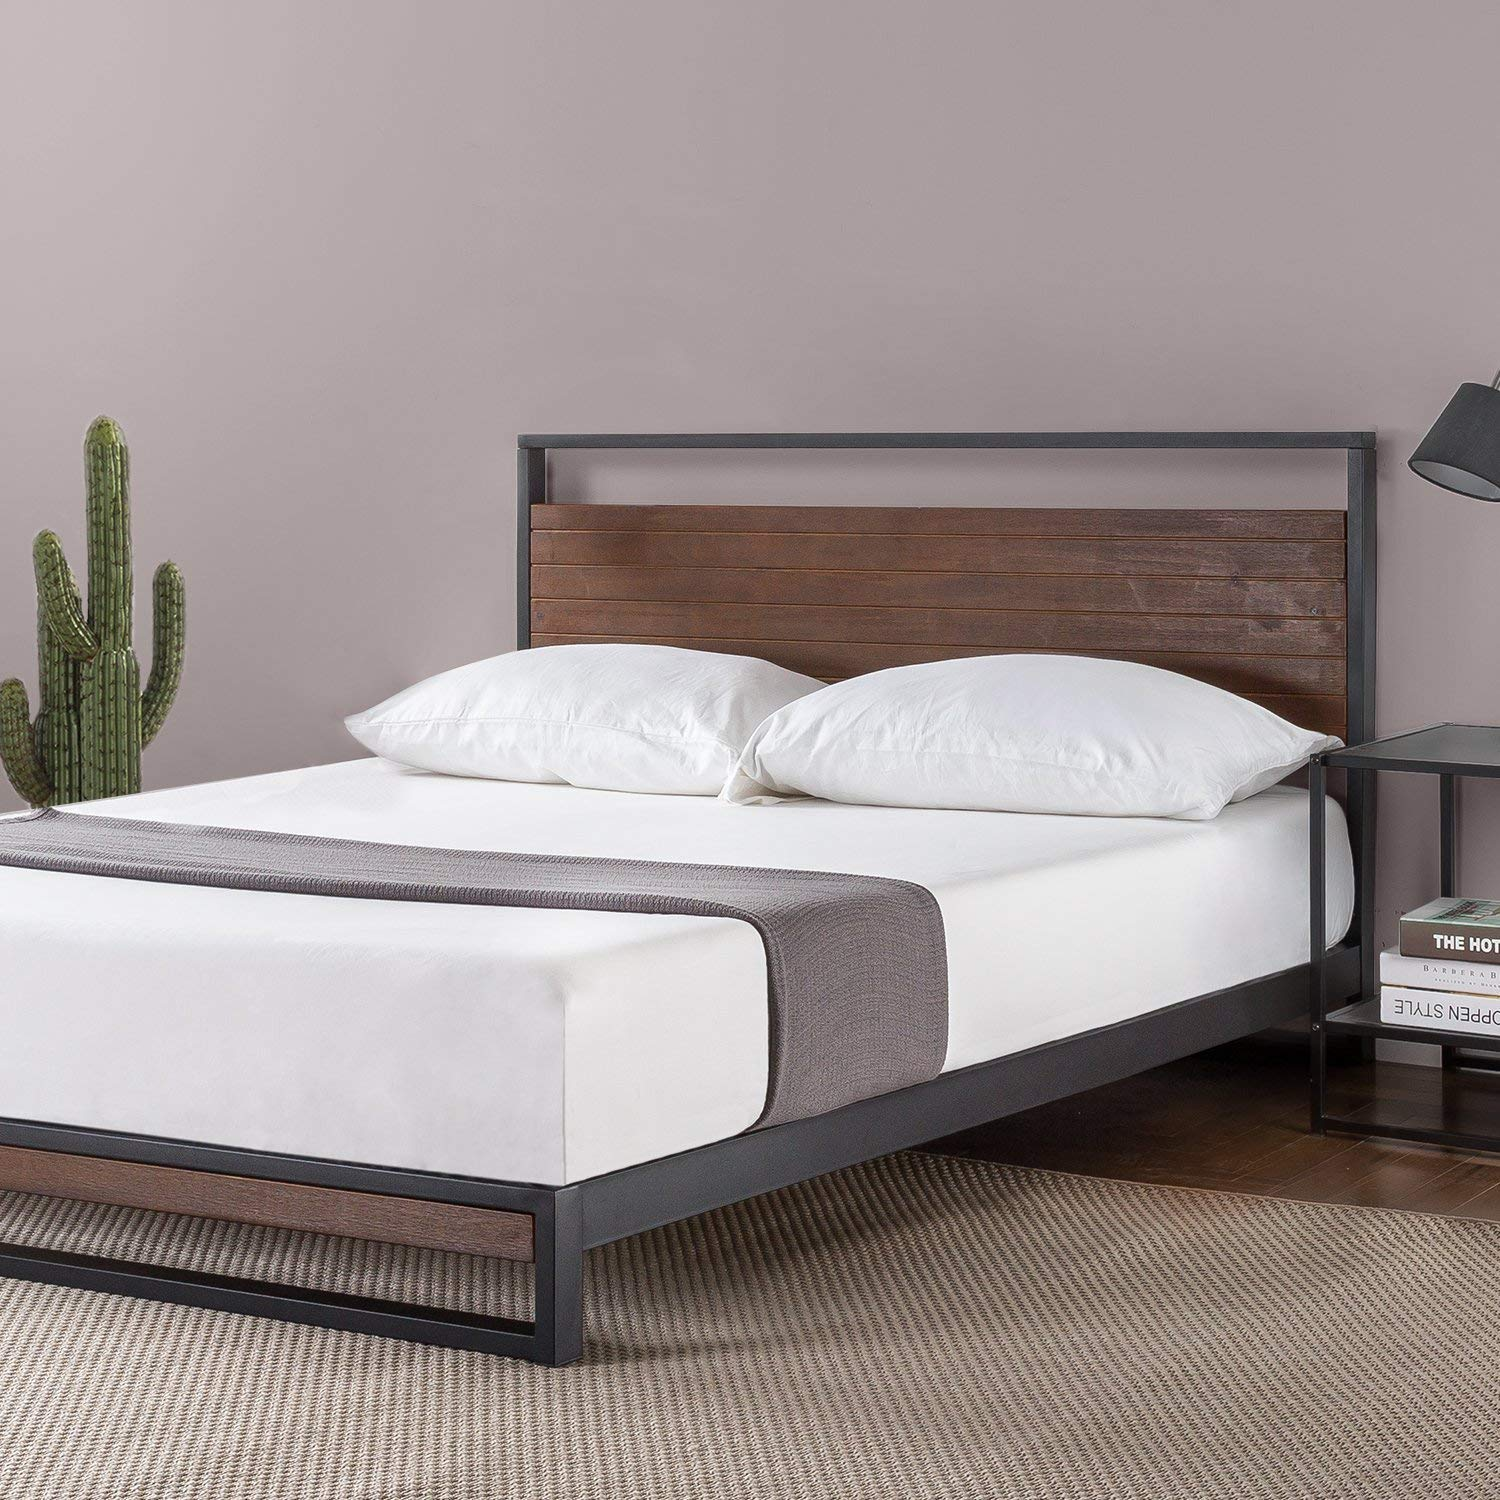 Why Everyone Choose This Zinus Platform Bed With Headboard